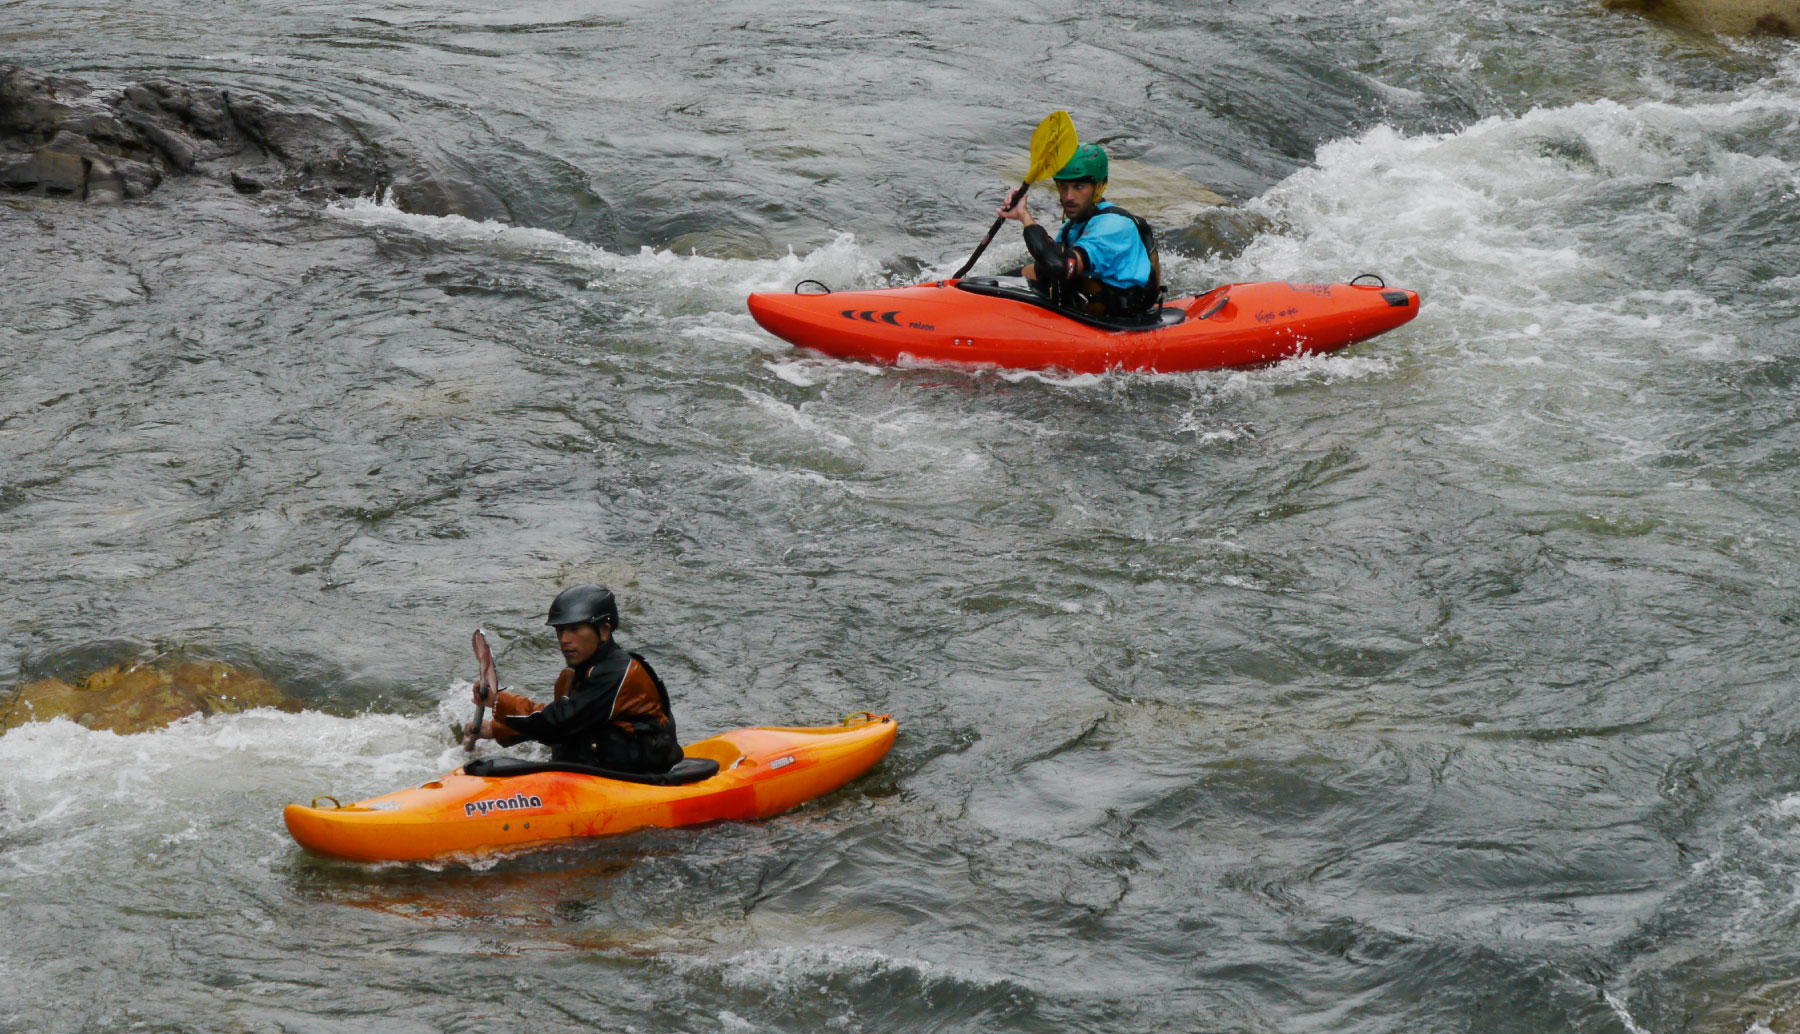 Two kayakers in the river